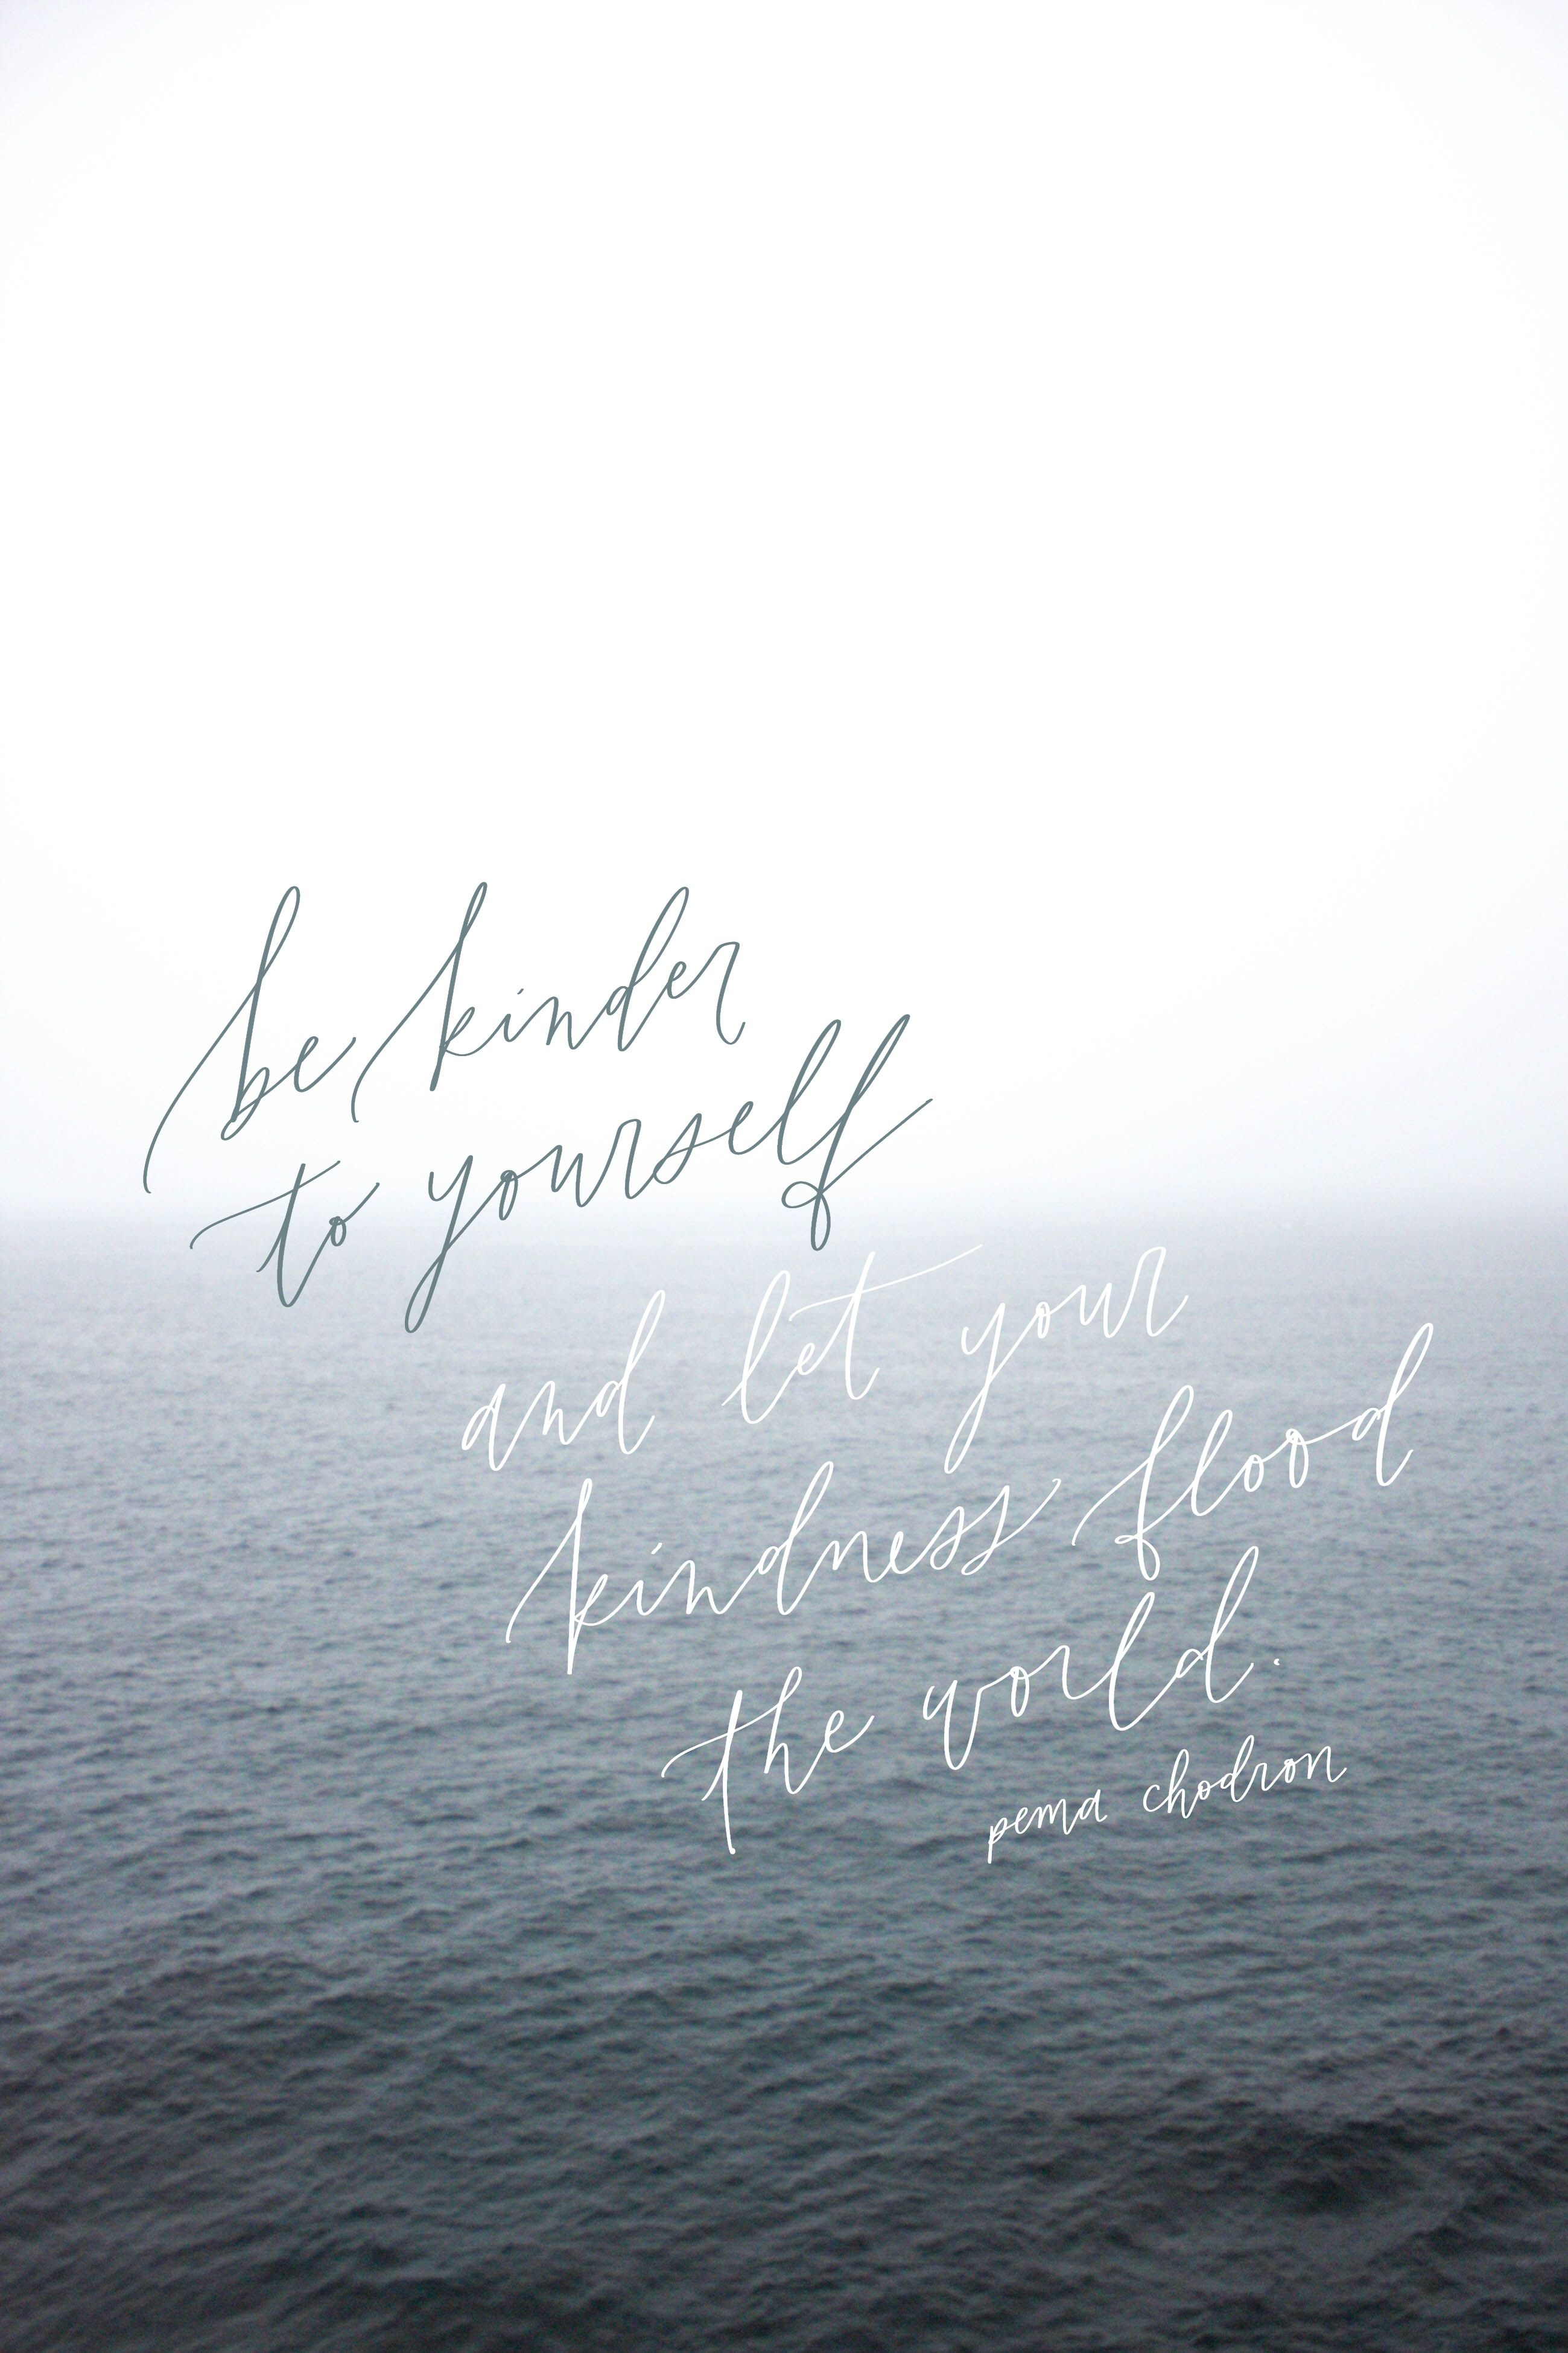 Pema Chodron Quotes Pema Chodron Quote Handlettering Calligraphy  Quotes  Words